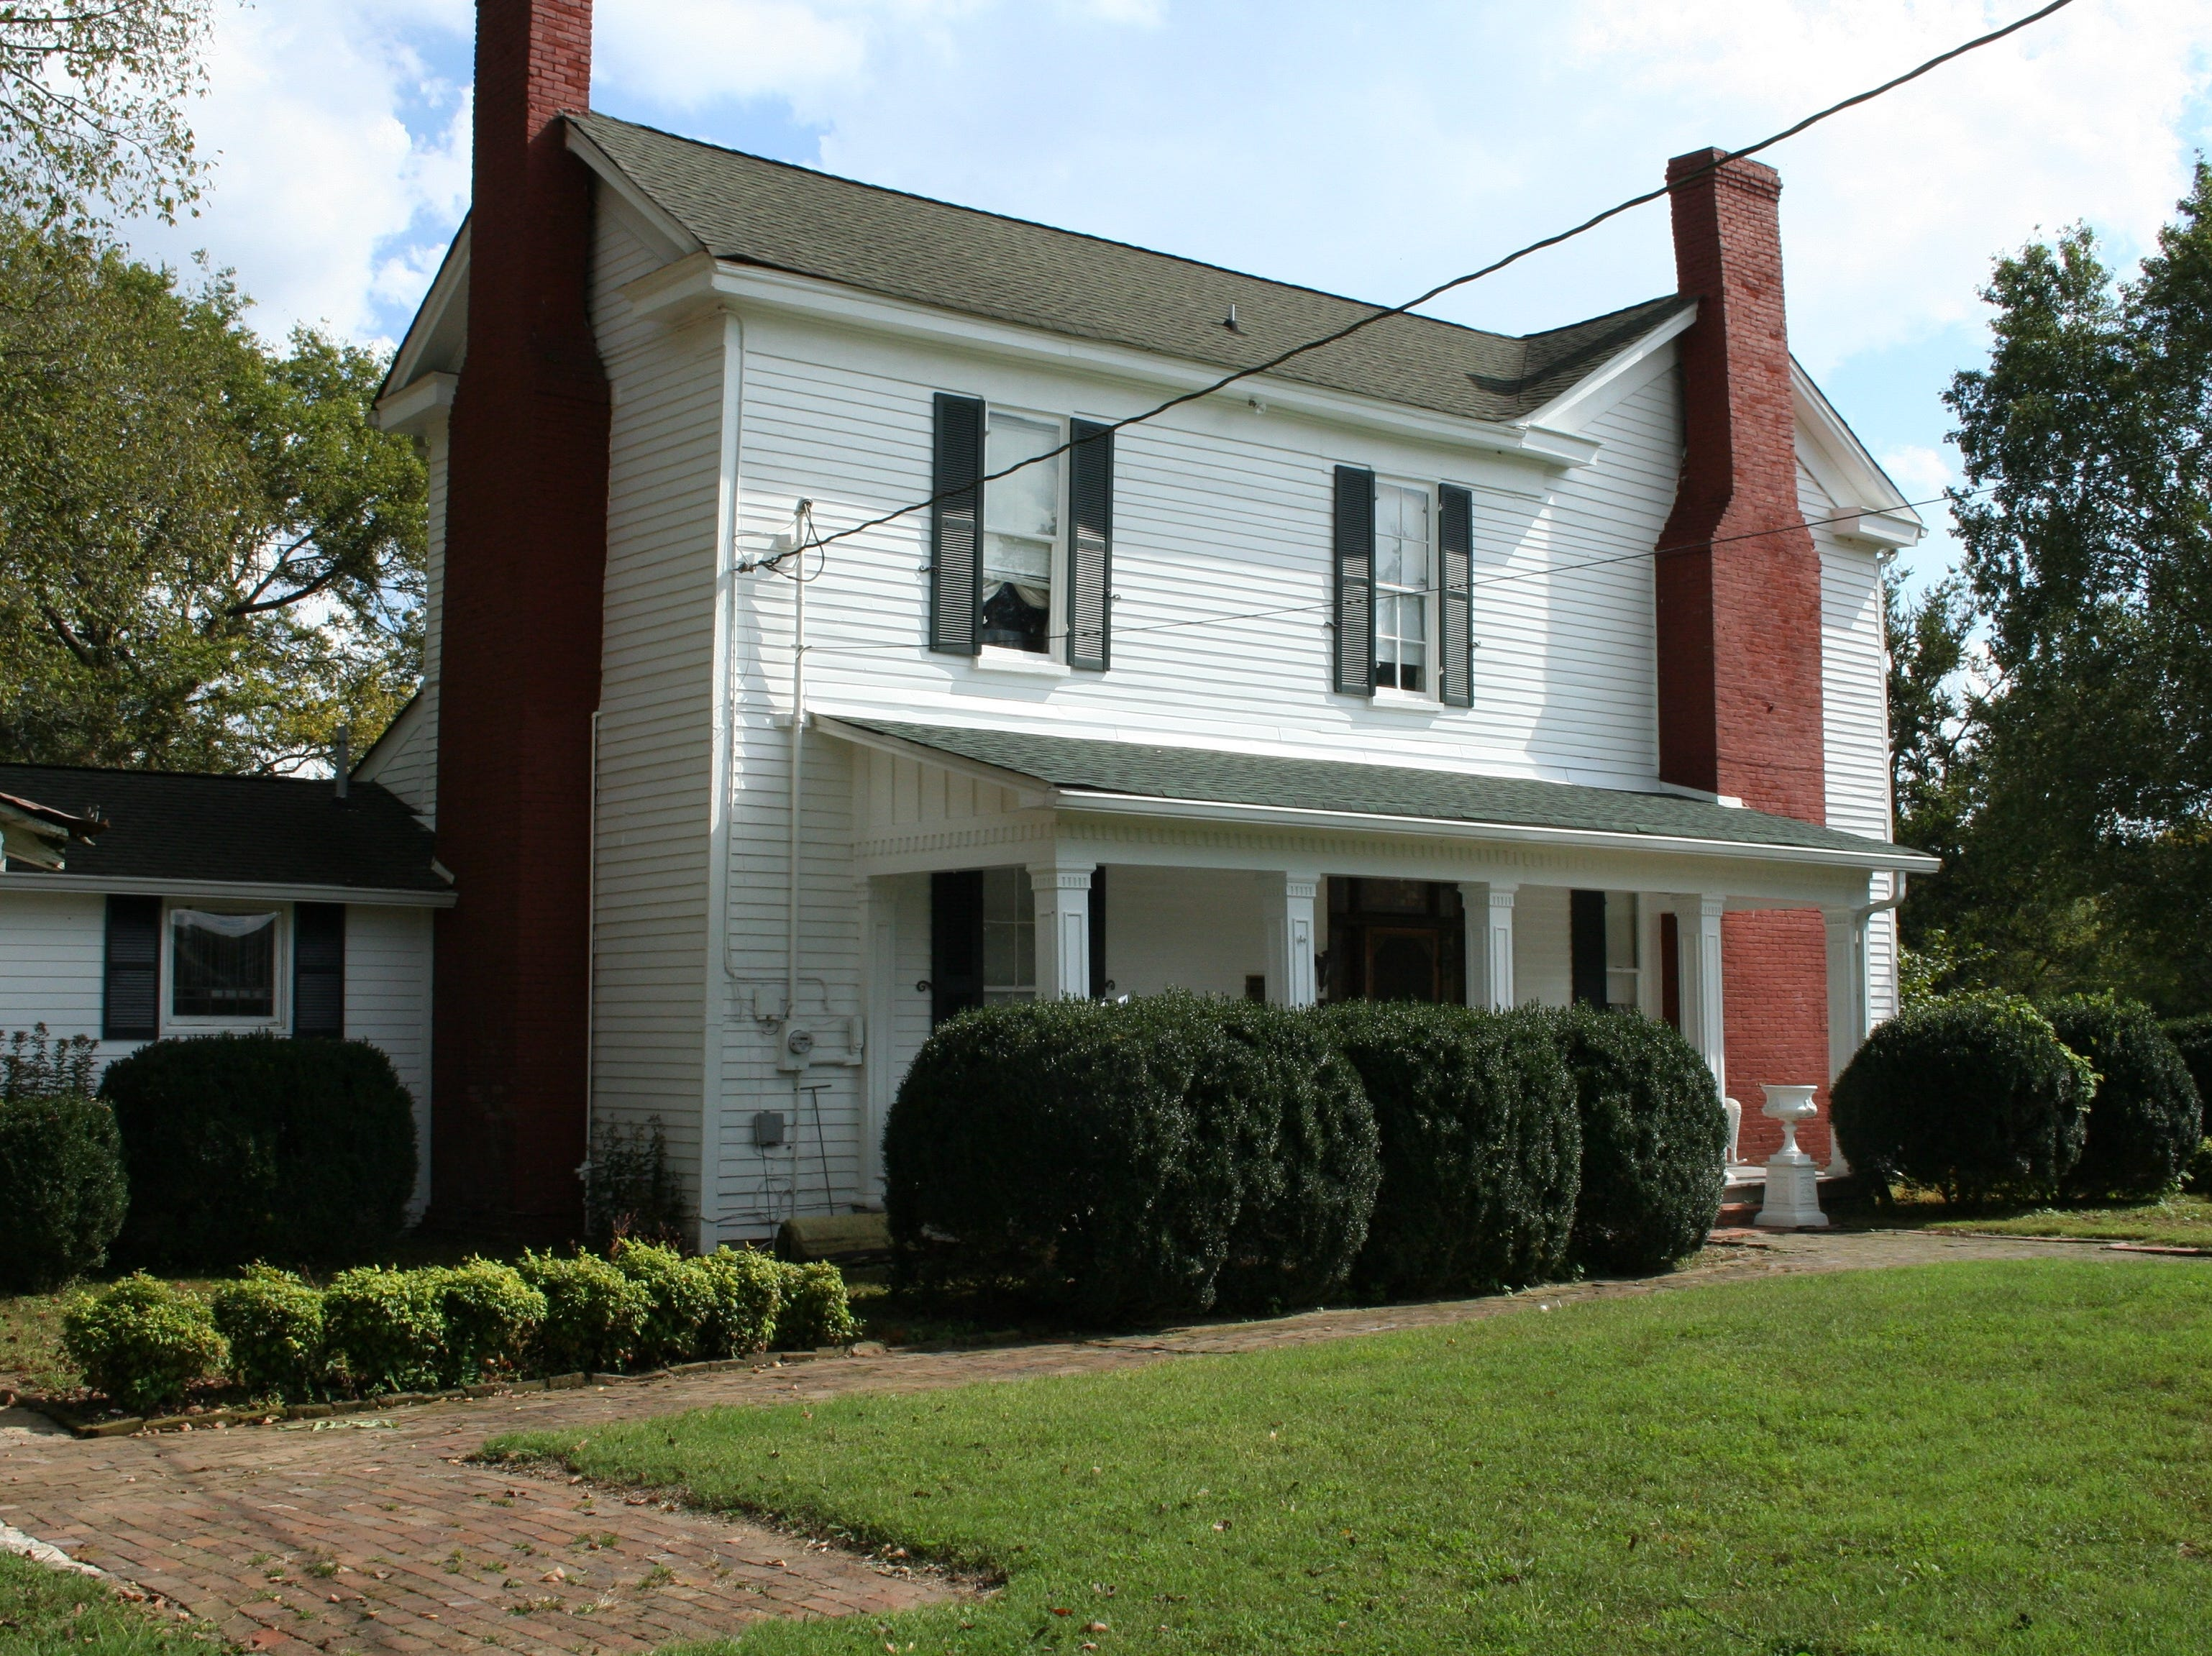 Riverside, located at 1218 W. Jefferson Pike in Murfreesboro (near Walter Hill), is up for auction starting at 10 a.m. Saturday, Oct. 27. Antiques, furnishings and the property are up for sale through Bob Parks Auction.